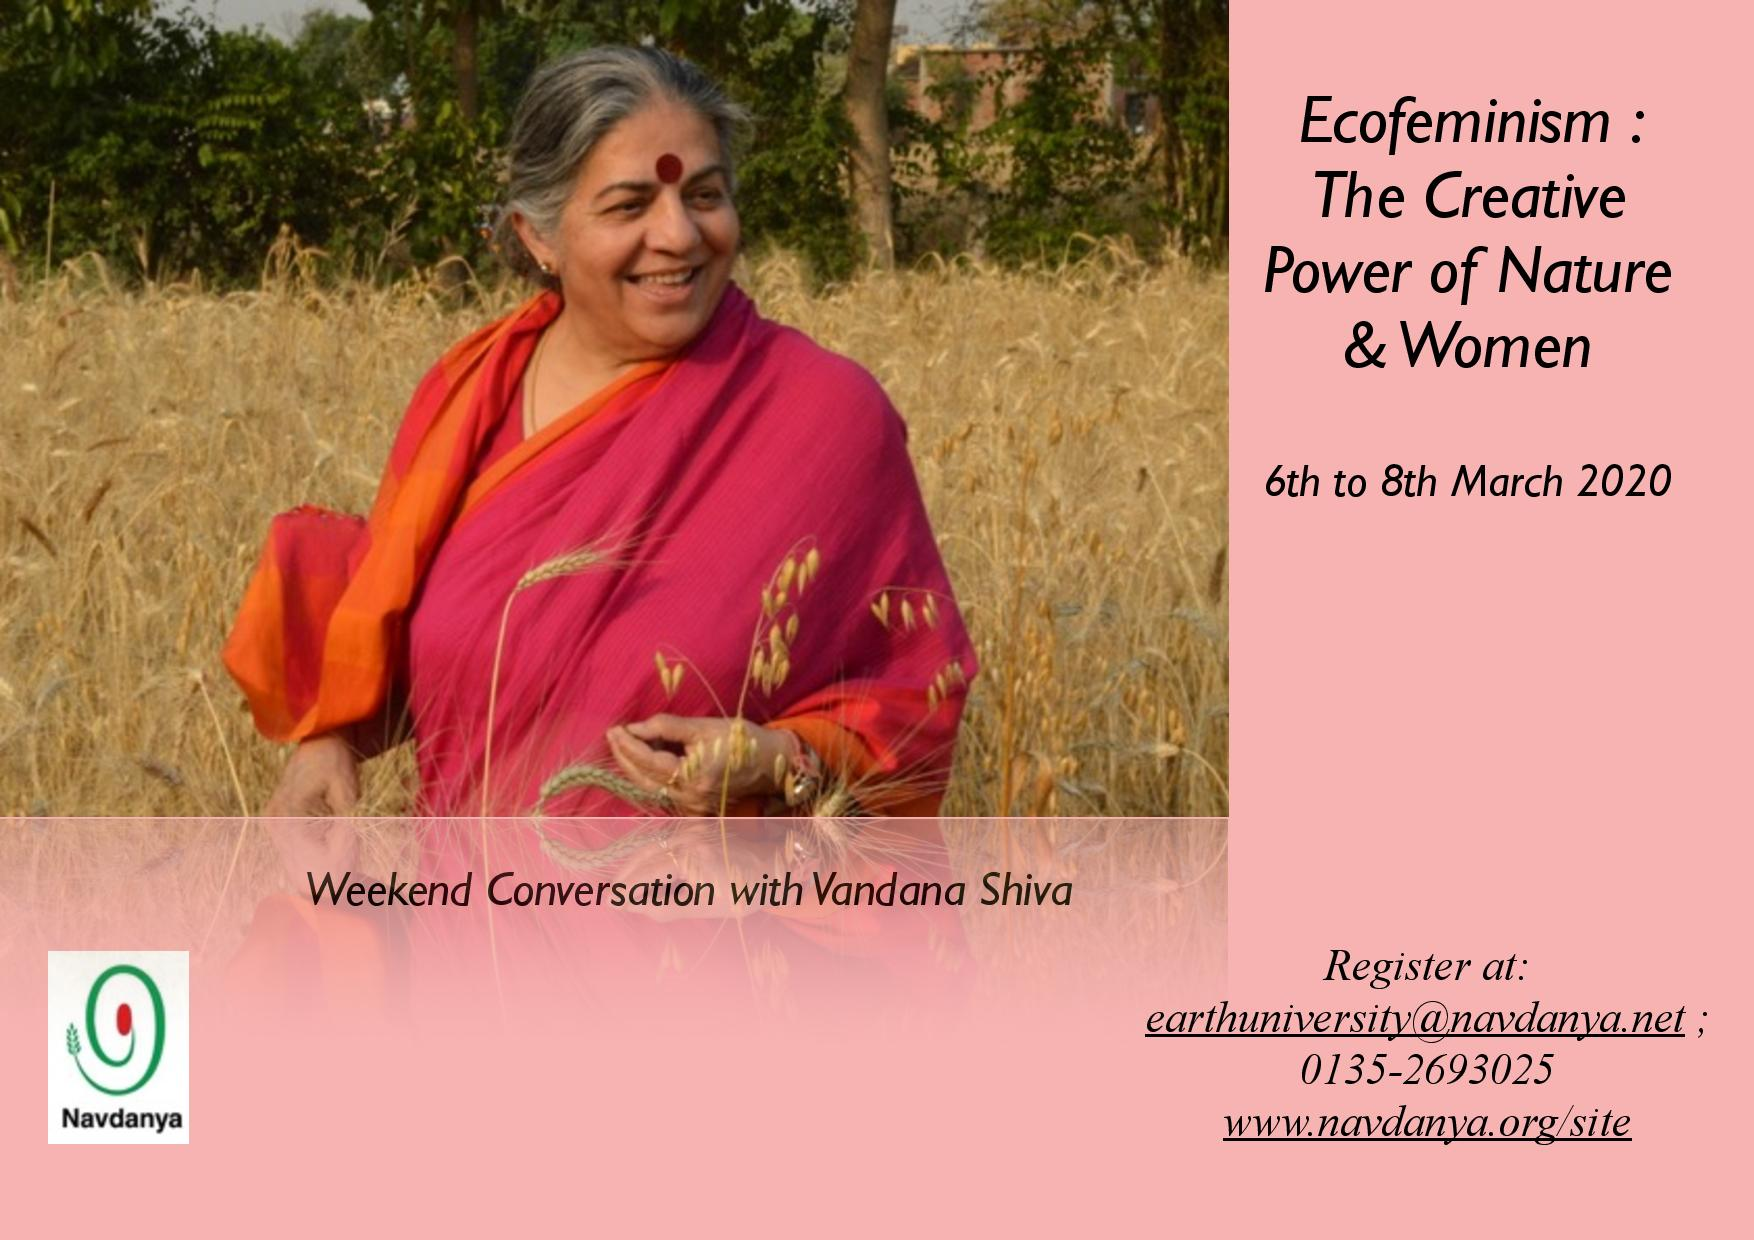 Ecofeminism: The Creative Power of Nature & Women